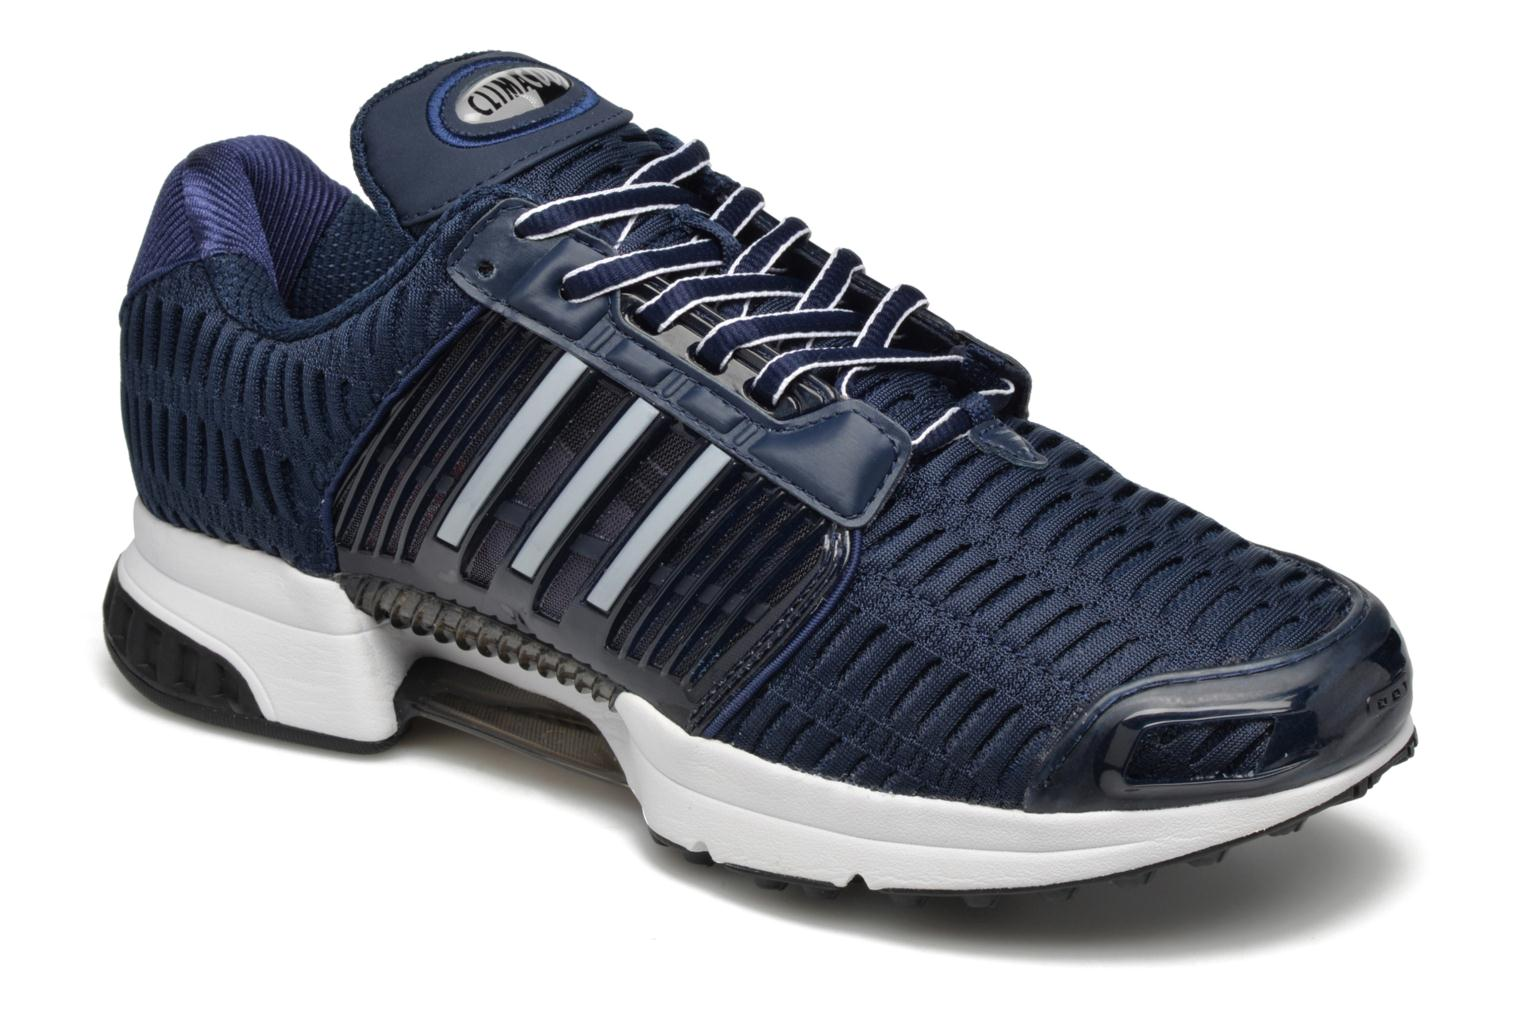 Marques Chaussure homme Adidas Originals homme Climacool 1 Blnaco/Argmet/Clear